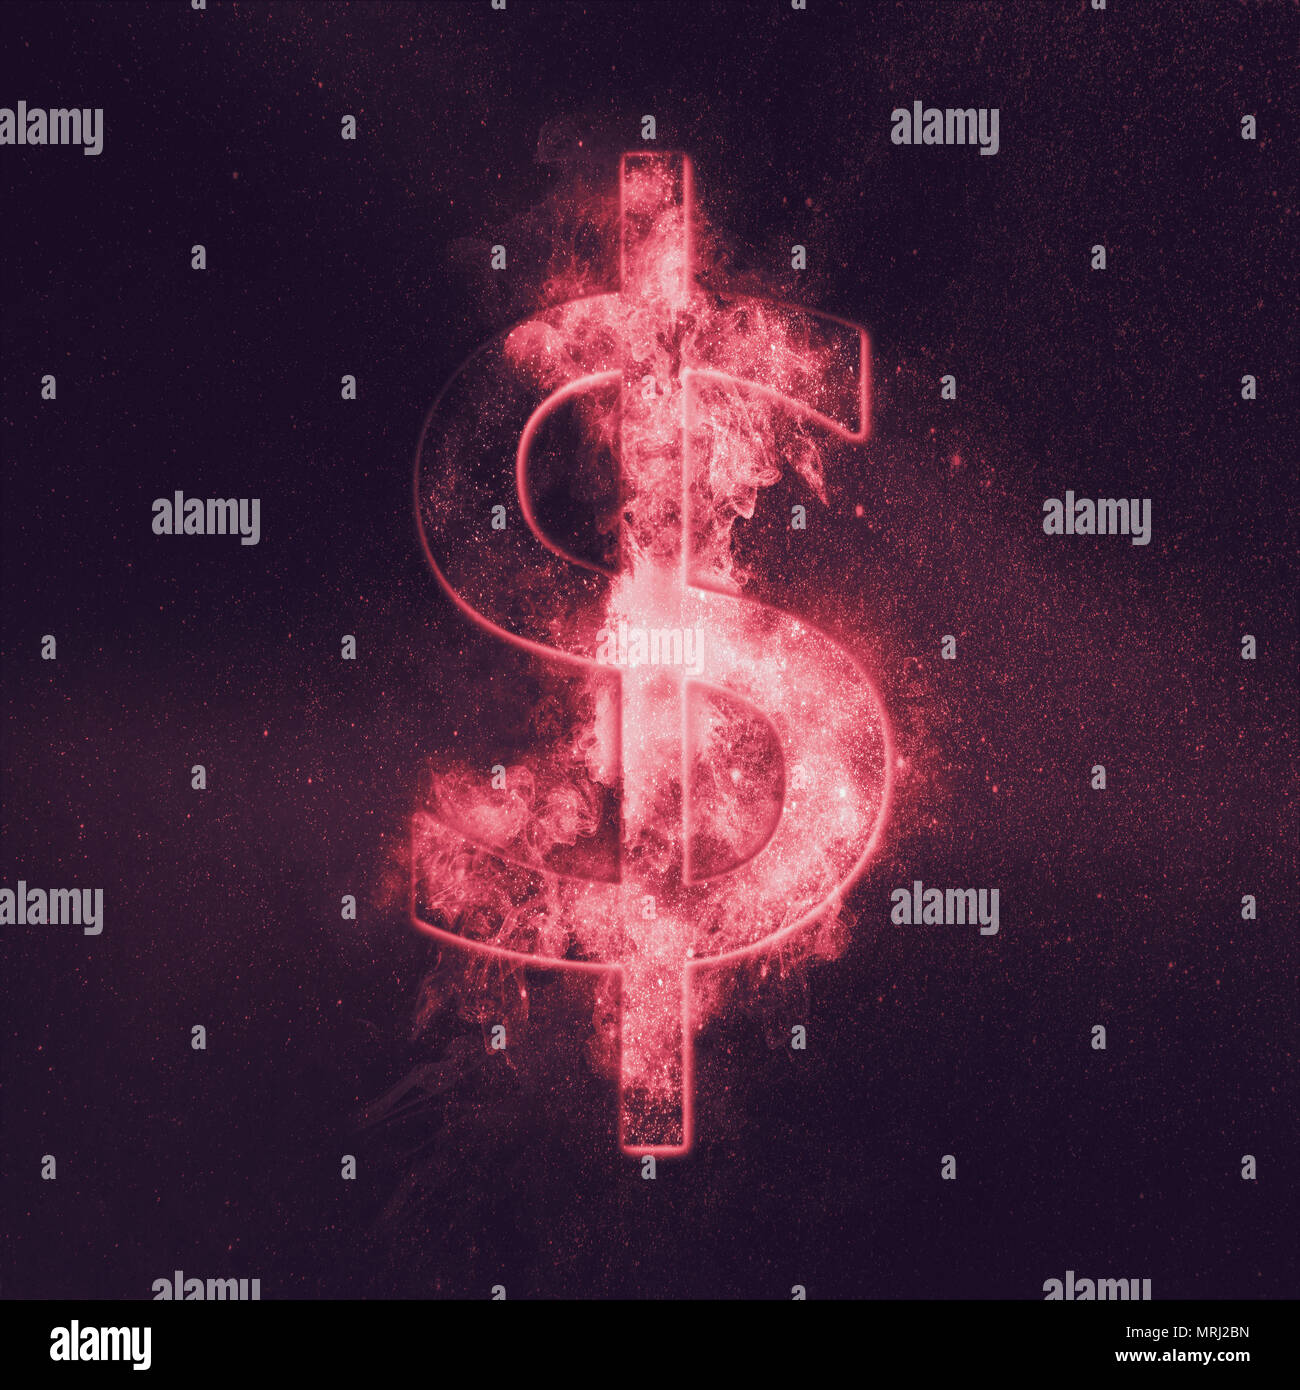 Dollar sign, Dollar Symbol. Monetary currency symbol. Abstract night sky background. - Stock Image